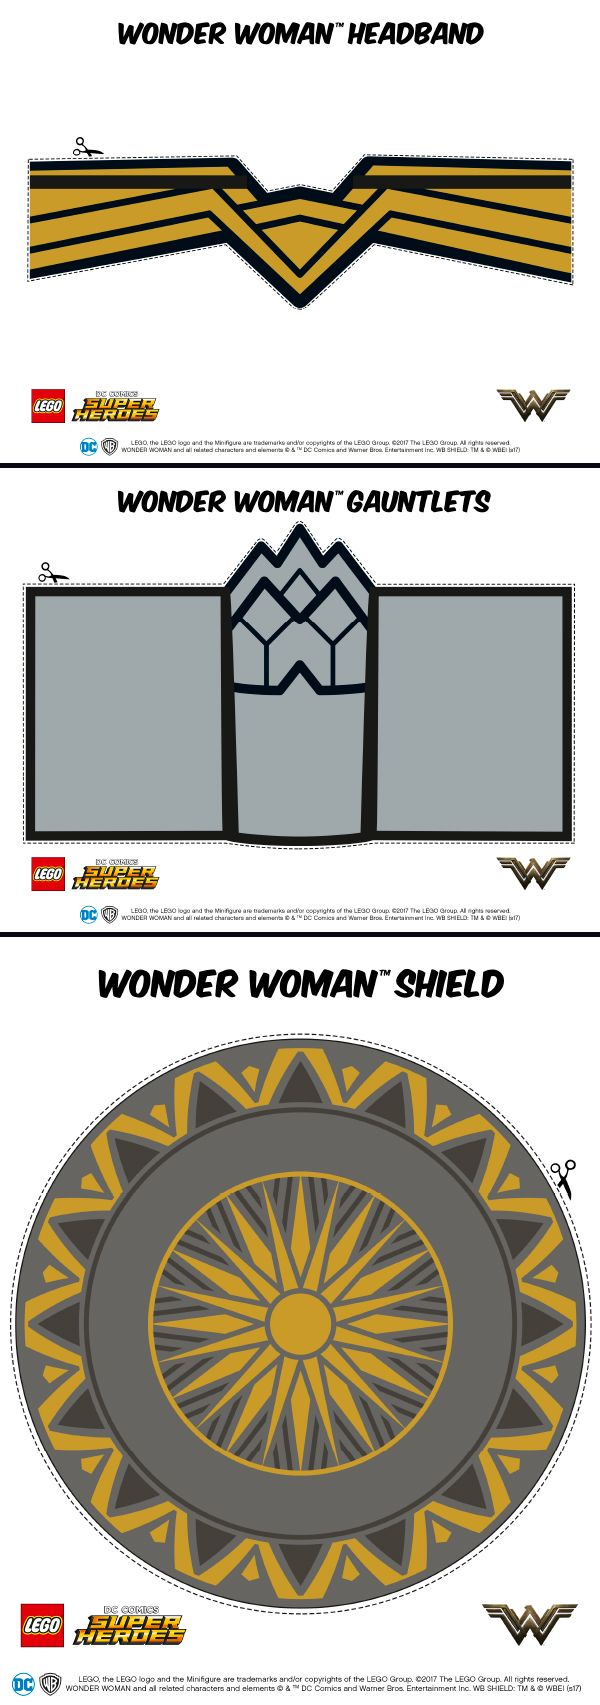 Wonder Woman Accessory Download, have to think of a way to make it look real.